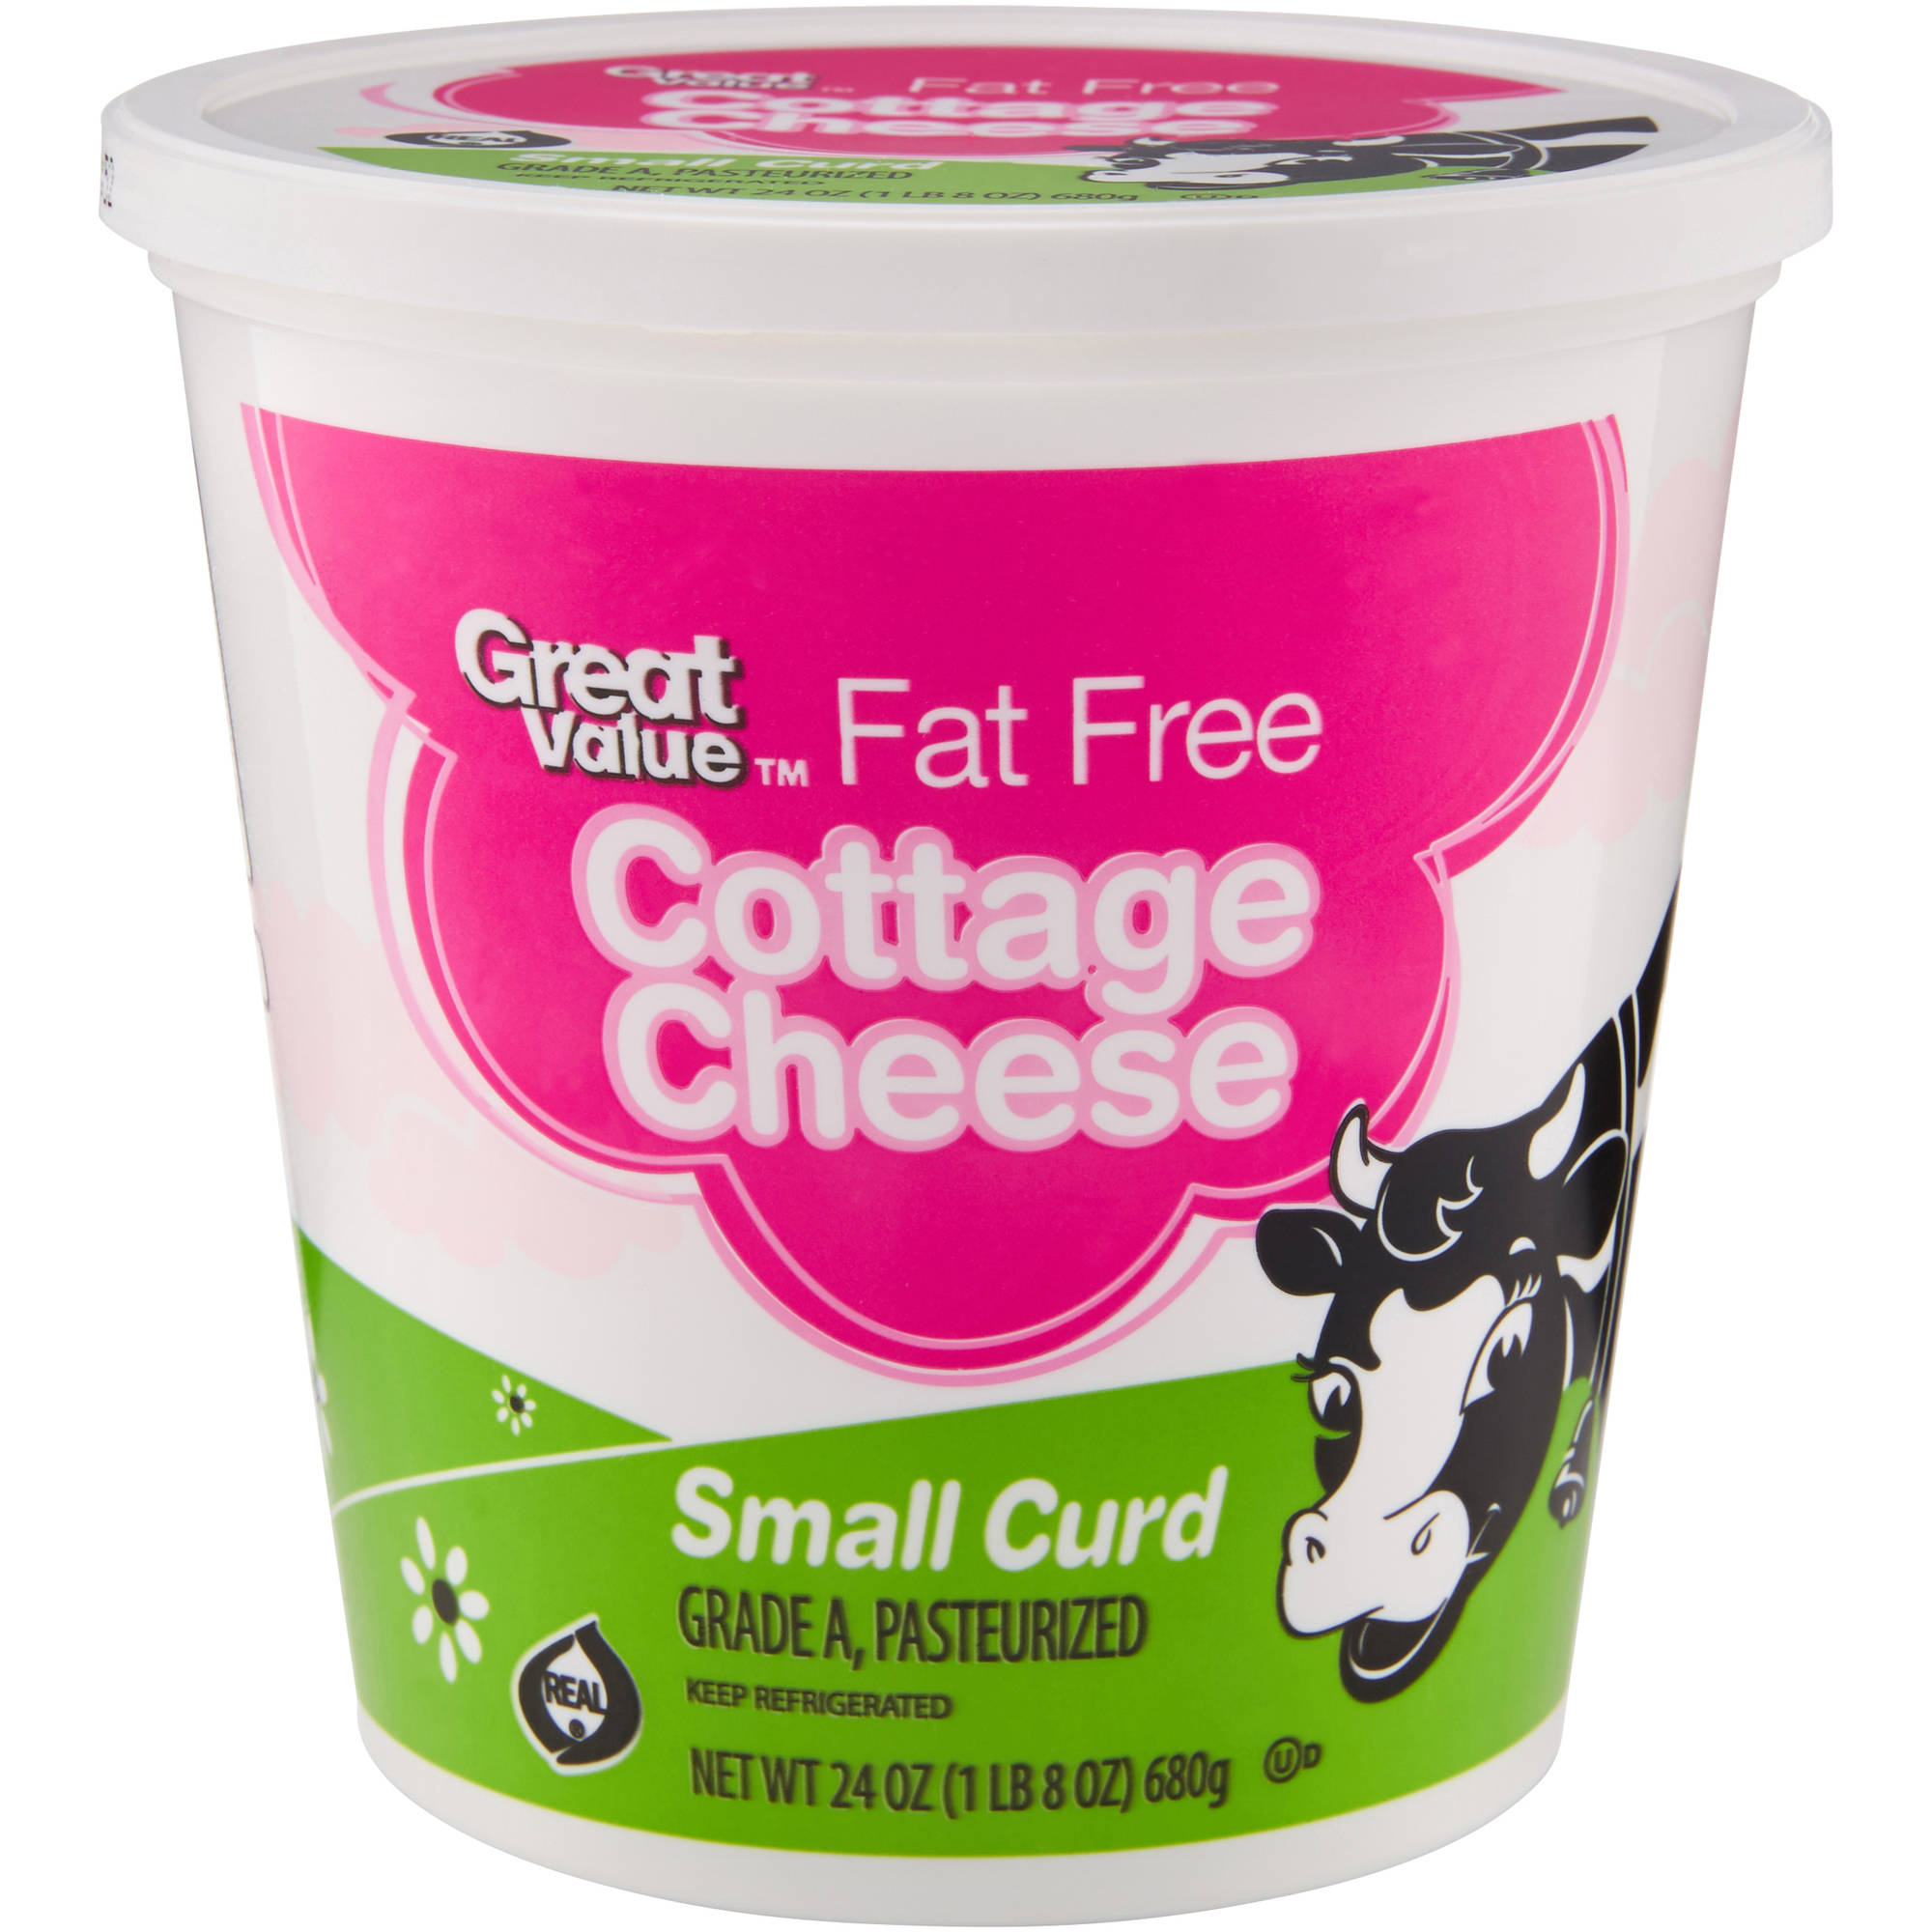 Great Value Fat Free Small Curd Cottage Cheese, 24 oz